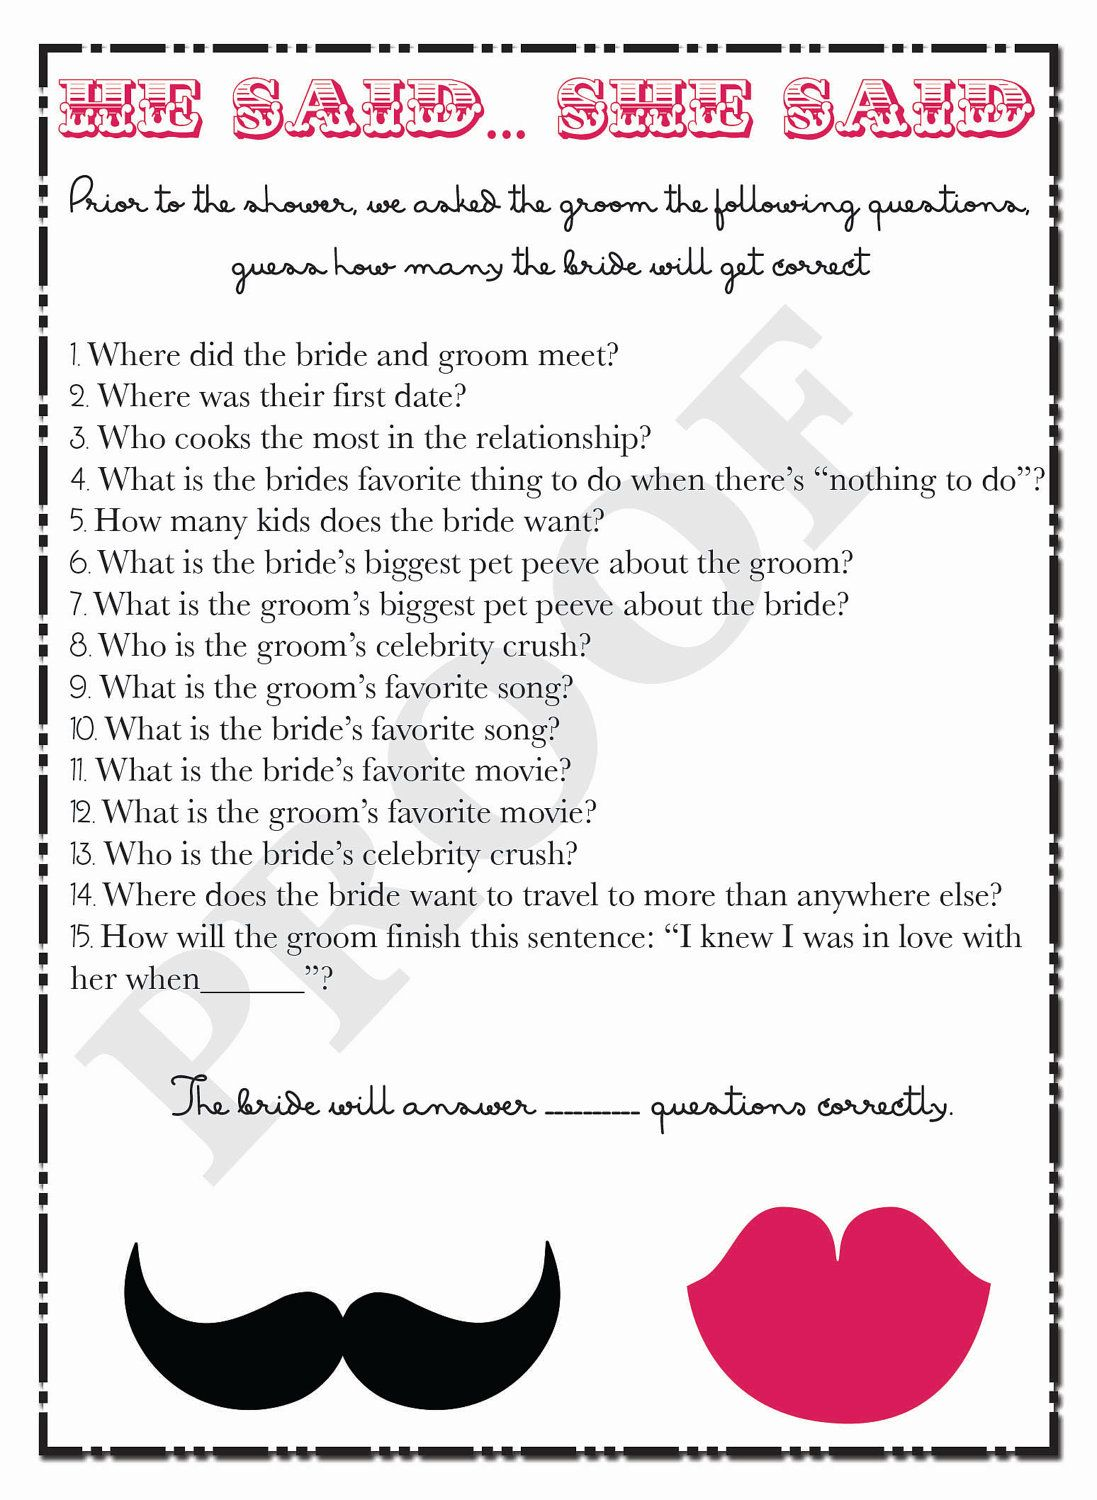 bridal shower game he said she said questions digital download or printable file 2000 via etsy